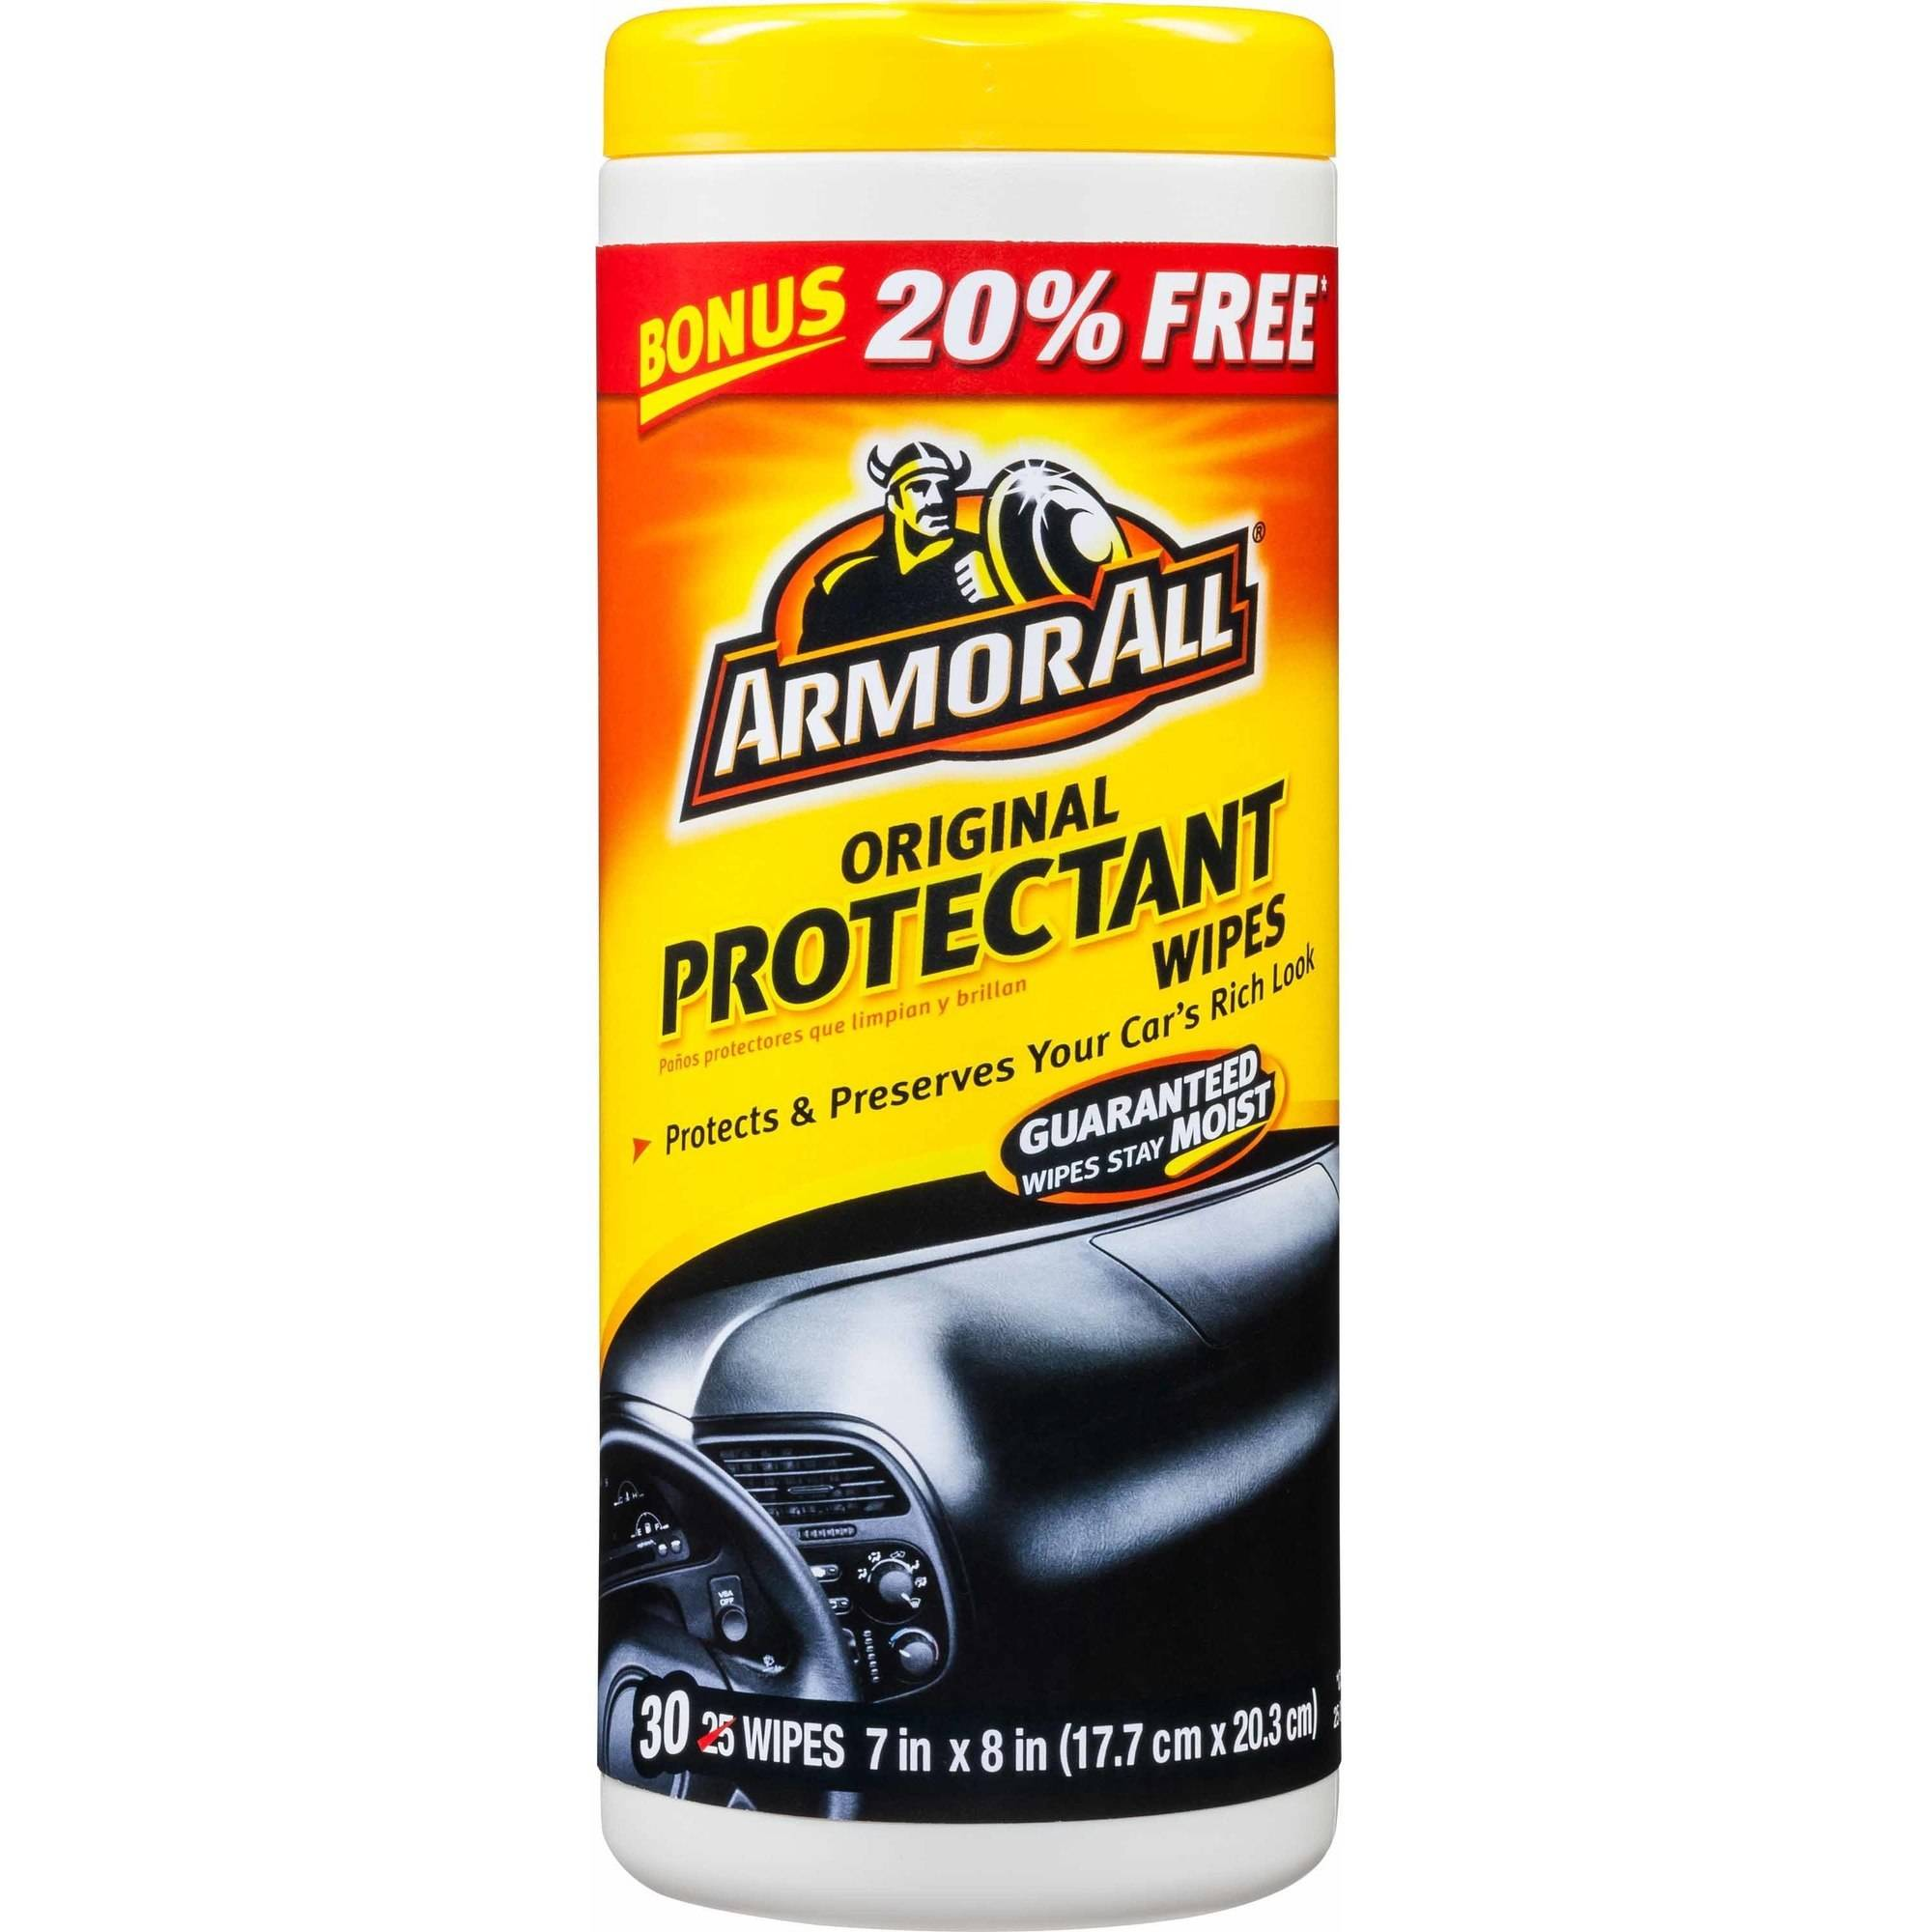 Armor All Protectant Wipes, 30-Count